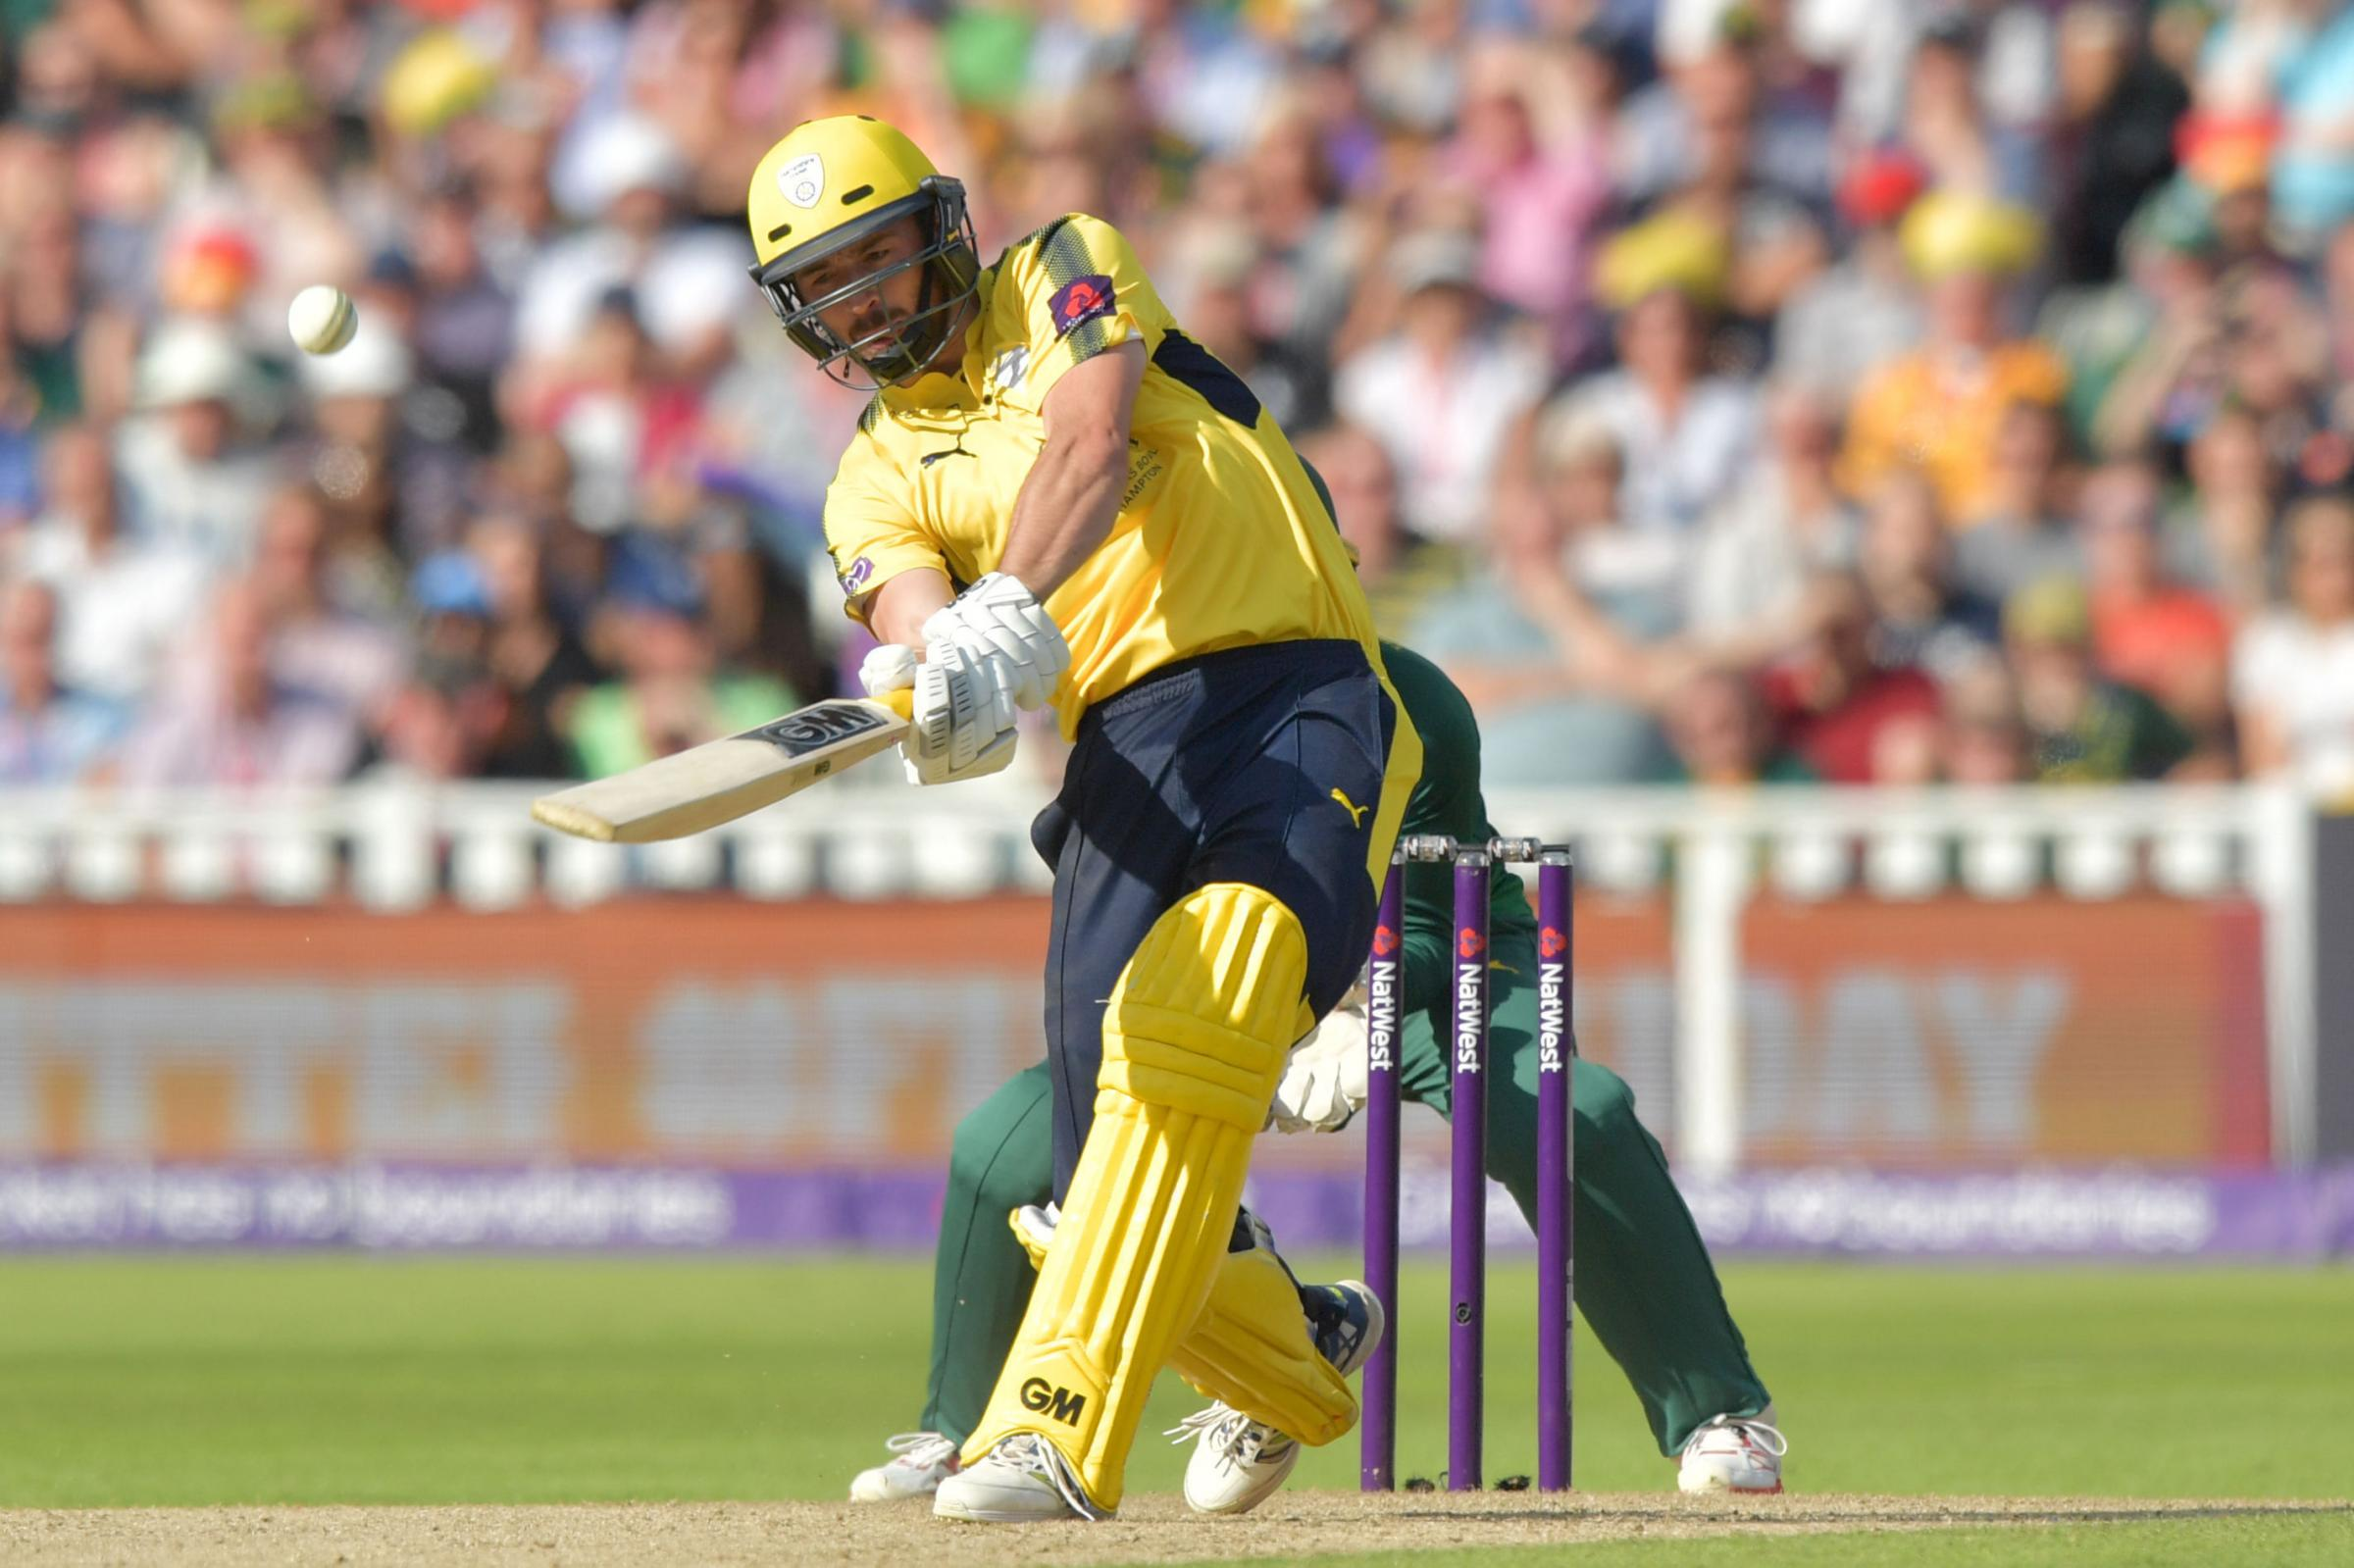 Hampshire captain James Vince could feature against Oxford MCCU in The Parks this weekend Picture: Anthony Devlin/PA Wire